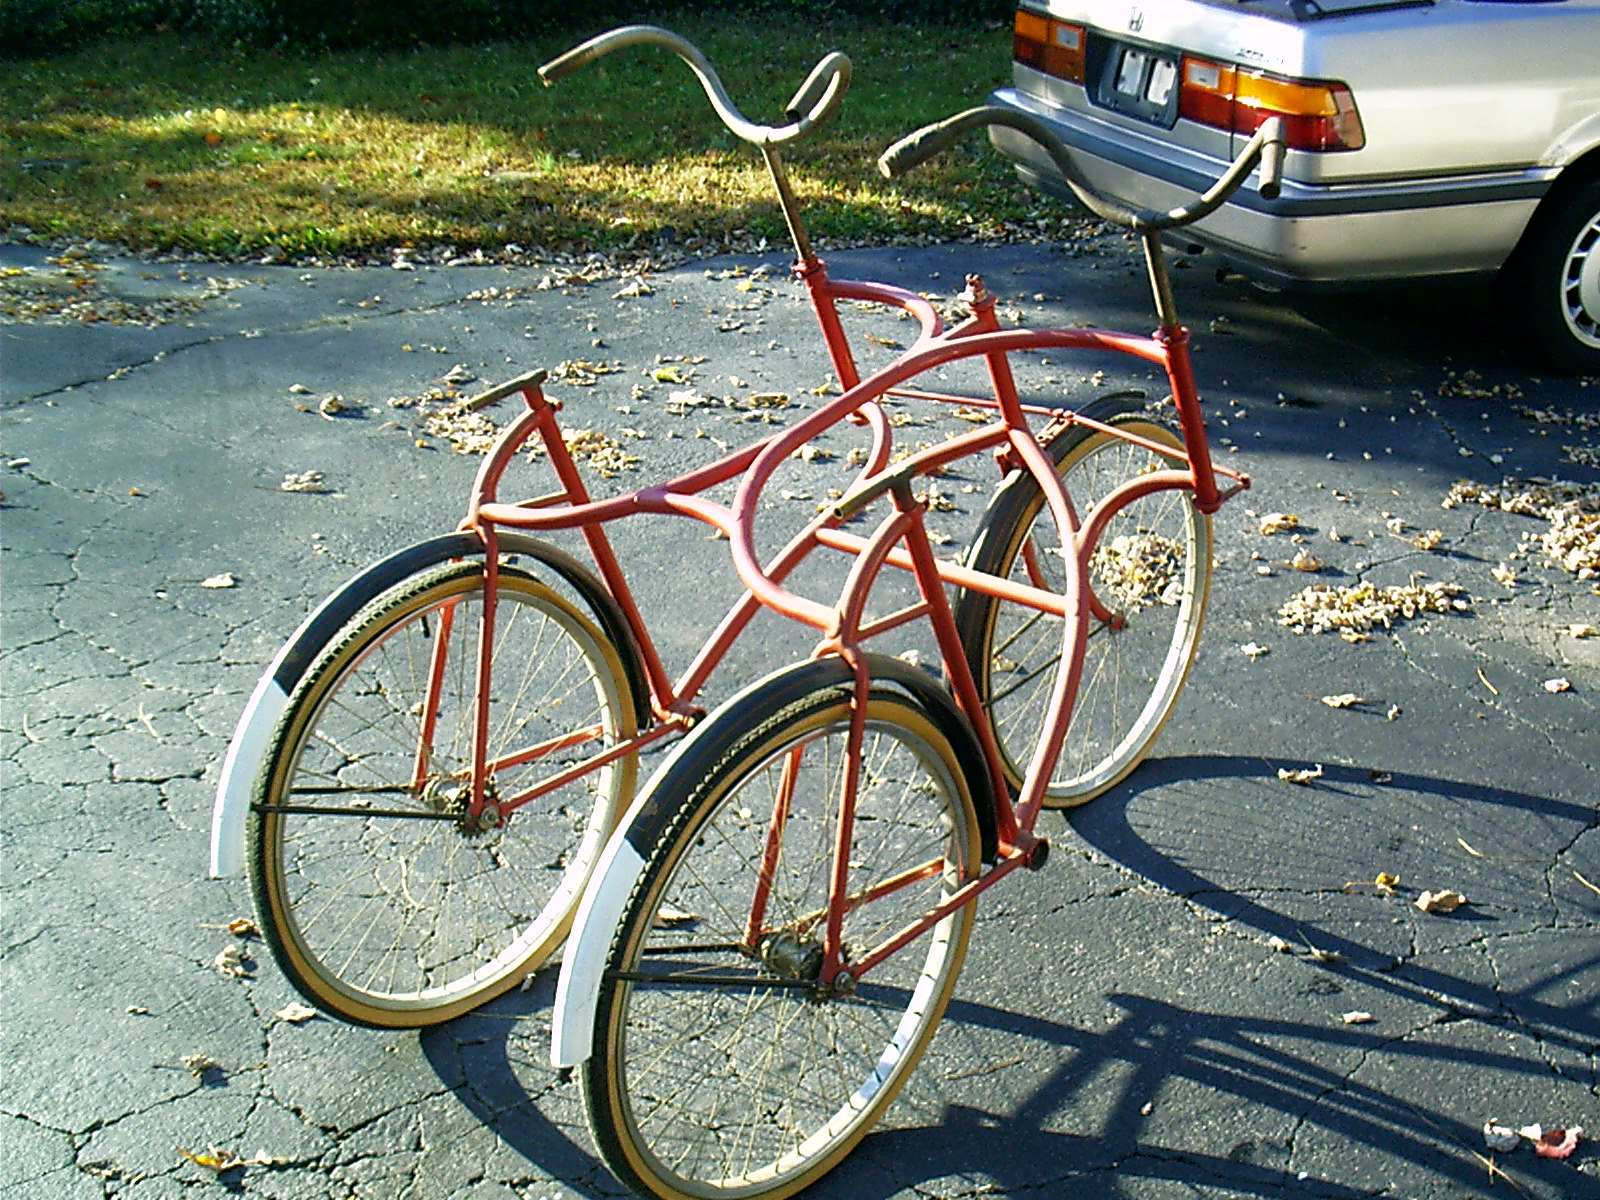 1890's Wolff American Side by side tandem bicycle - Picture #2